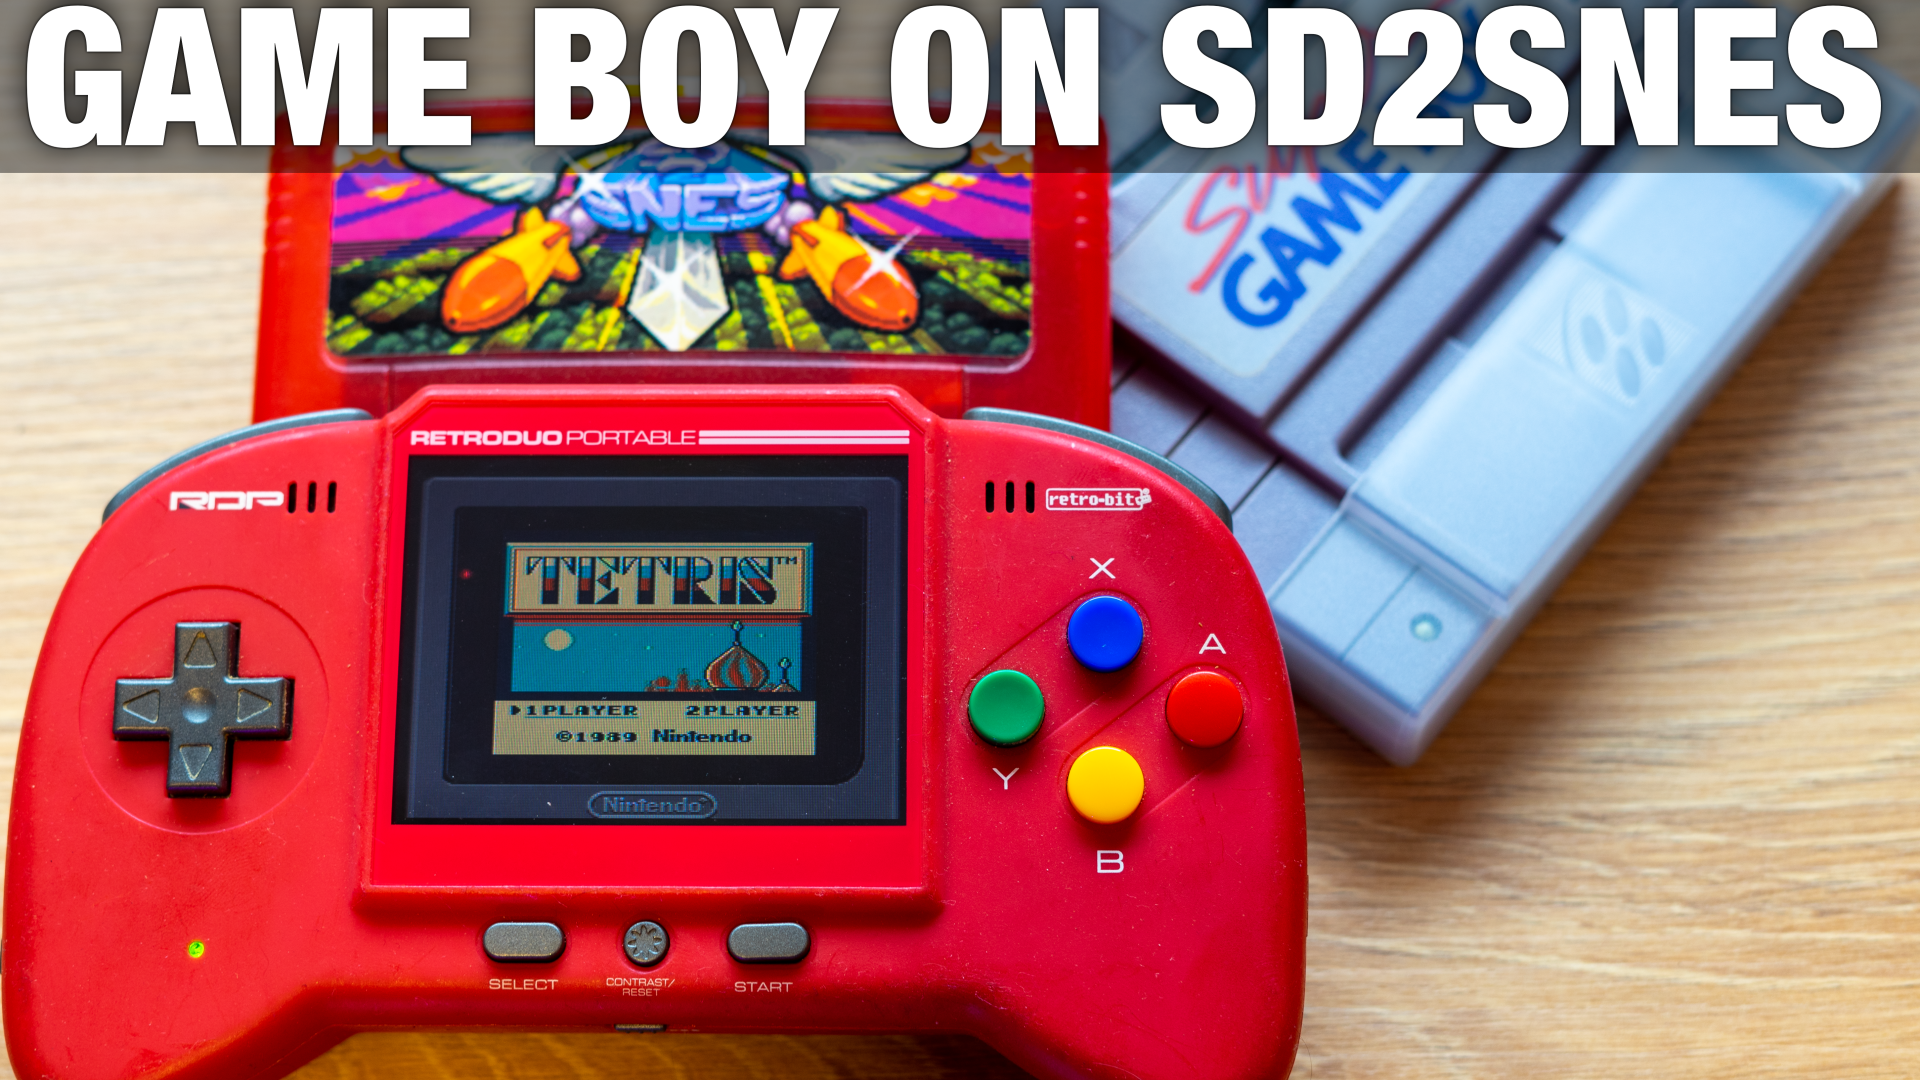 SD2SNES Gets Super Game Boy Support